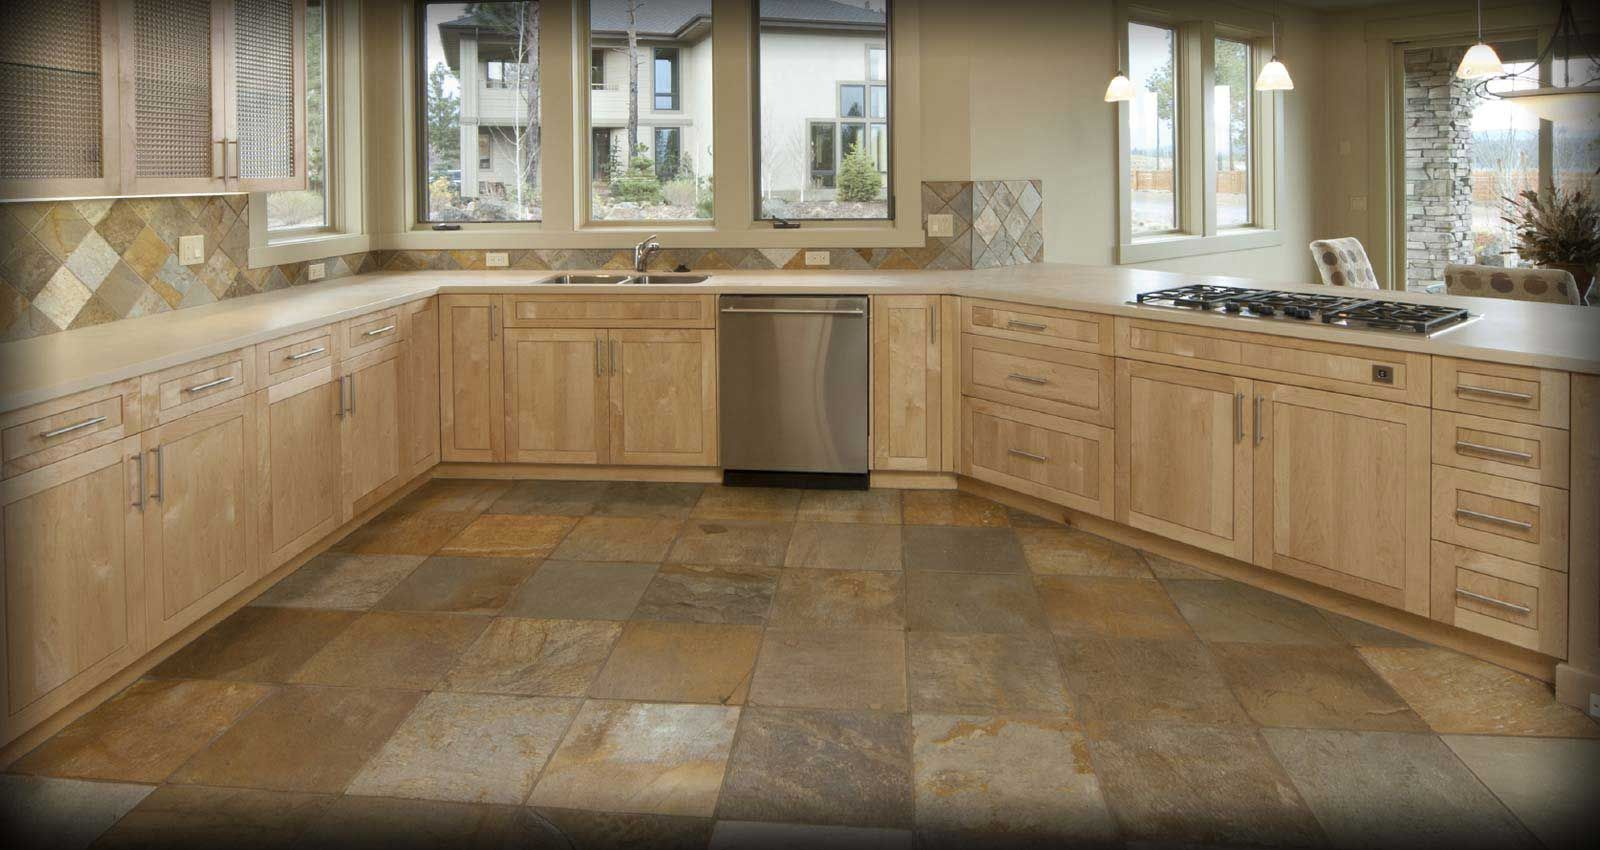 Is Bamboo Flooring Good For Kitchens Kitchen Floor Ideas Full Size Of Tile Pattern Ideas For Kitchen